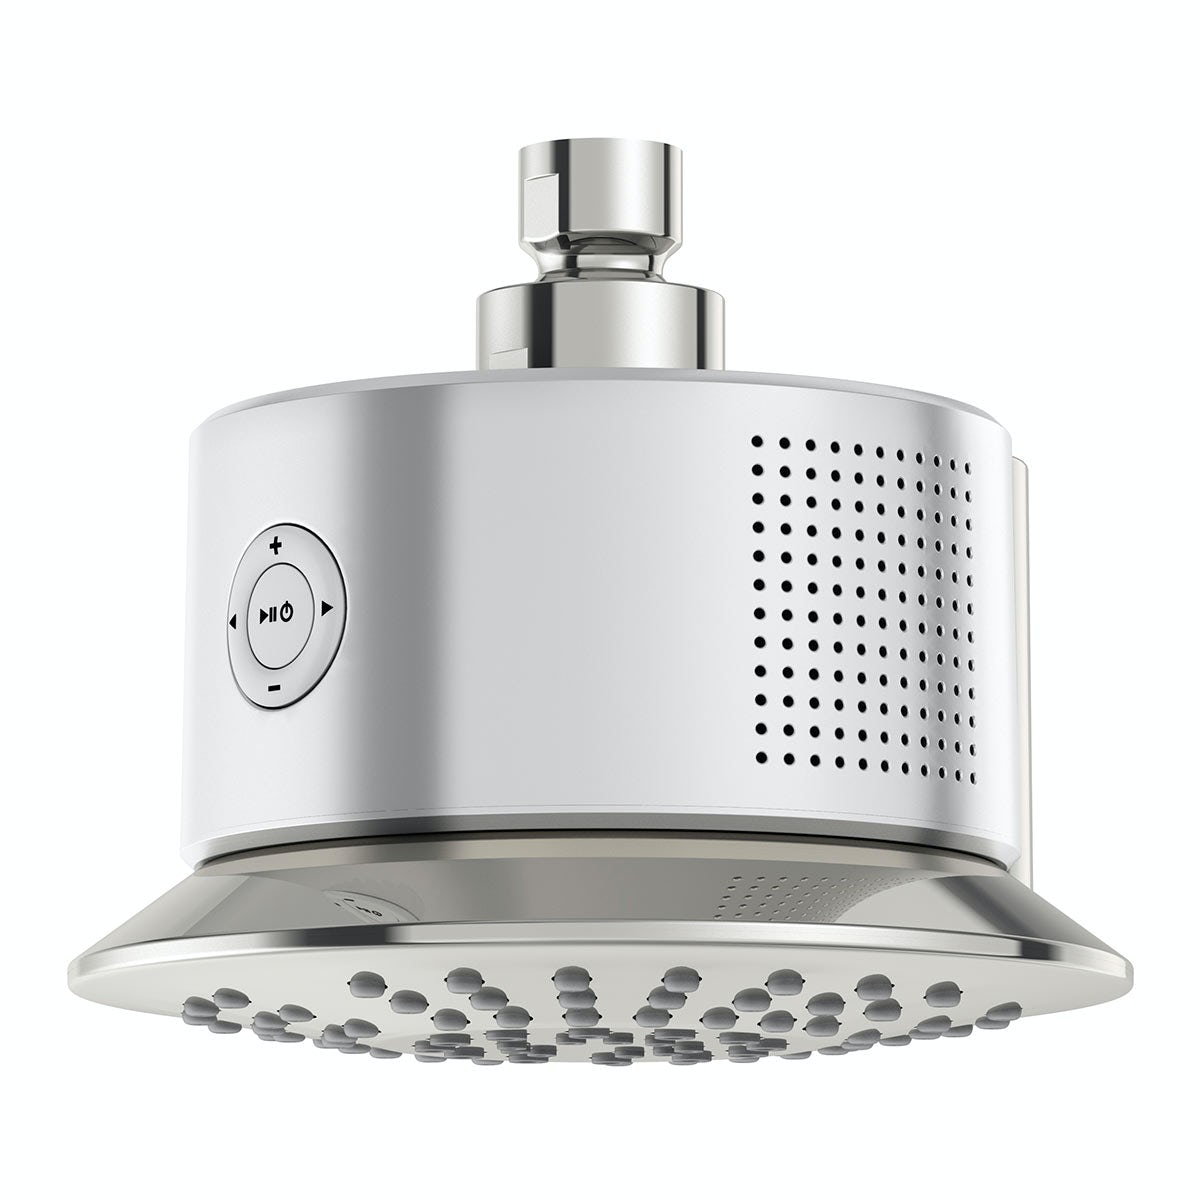 Mode Stream bluetooth speaker shower head | VictoriaPlum.com